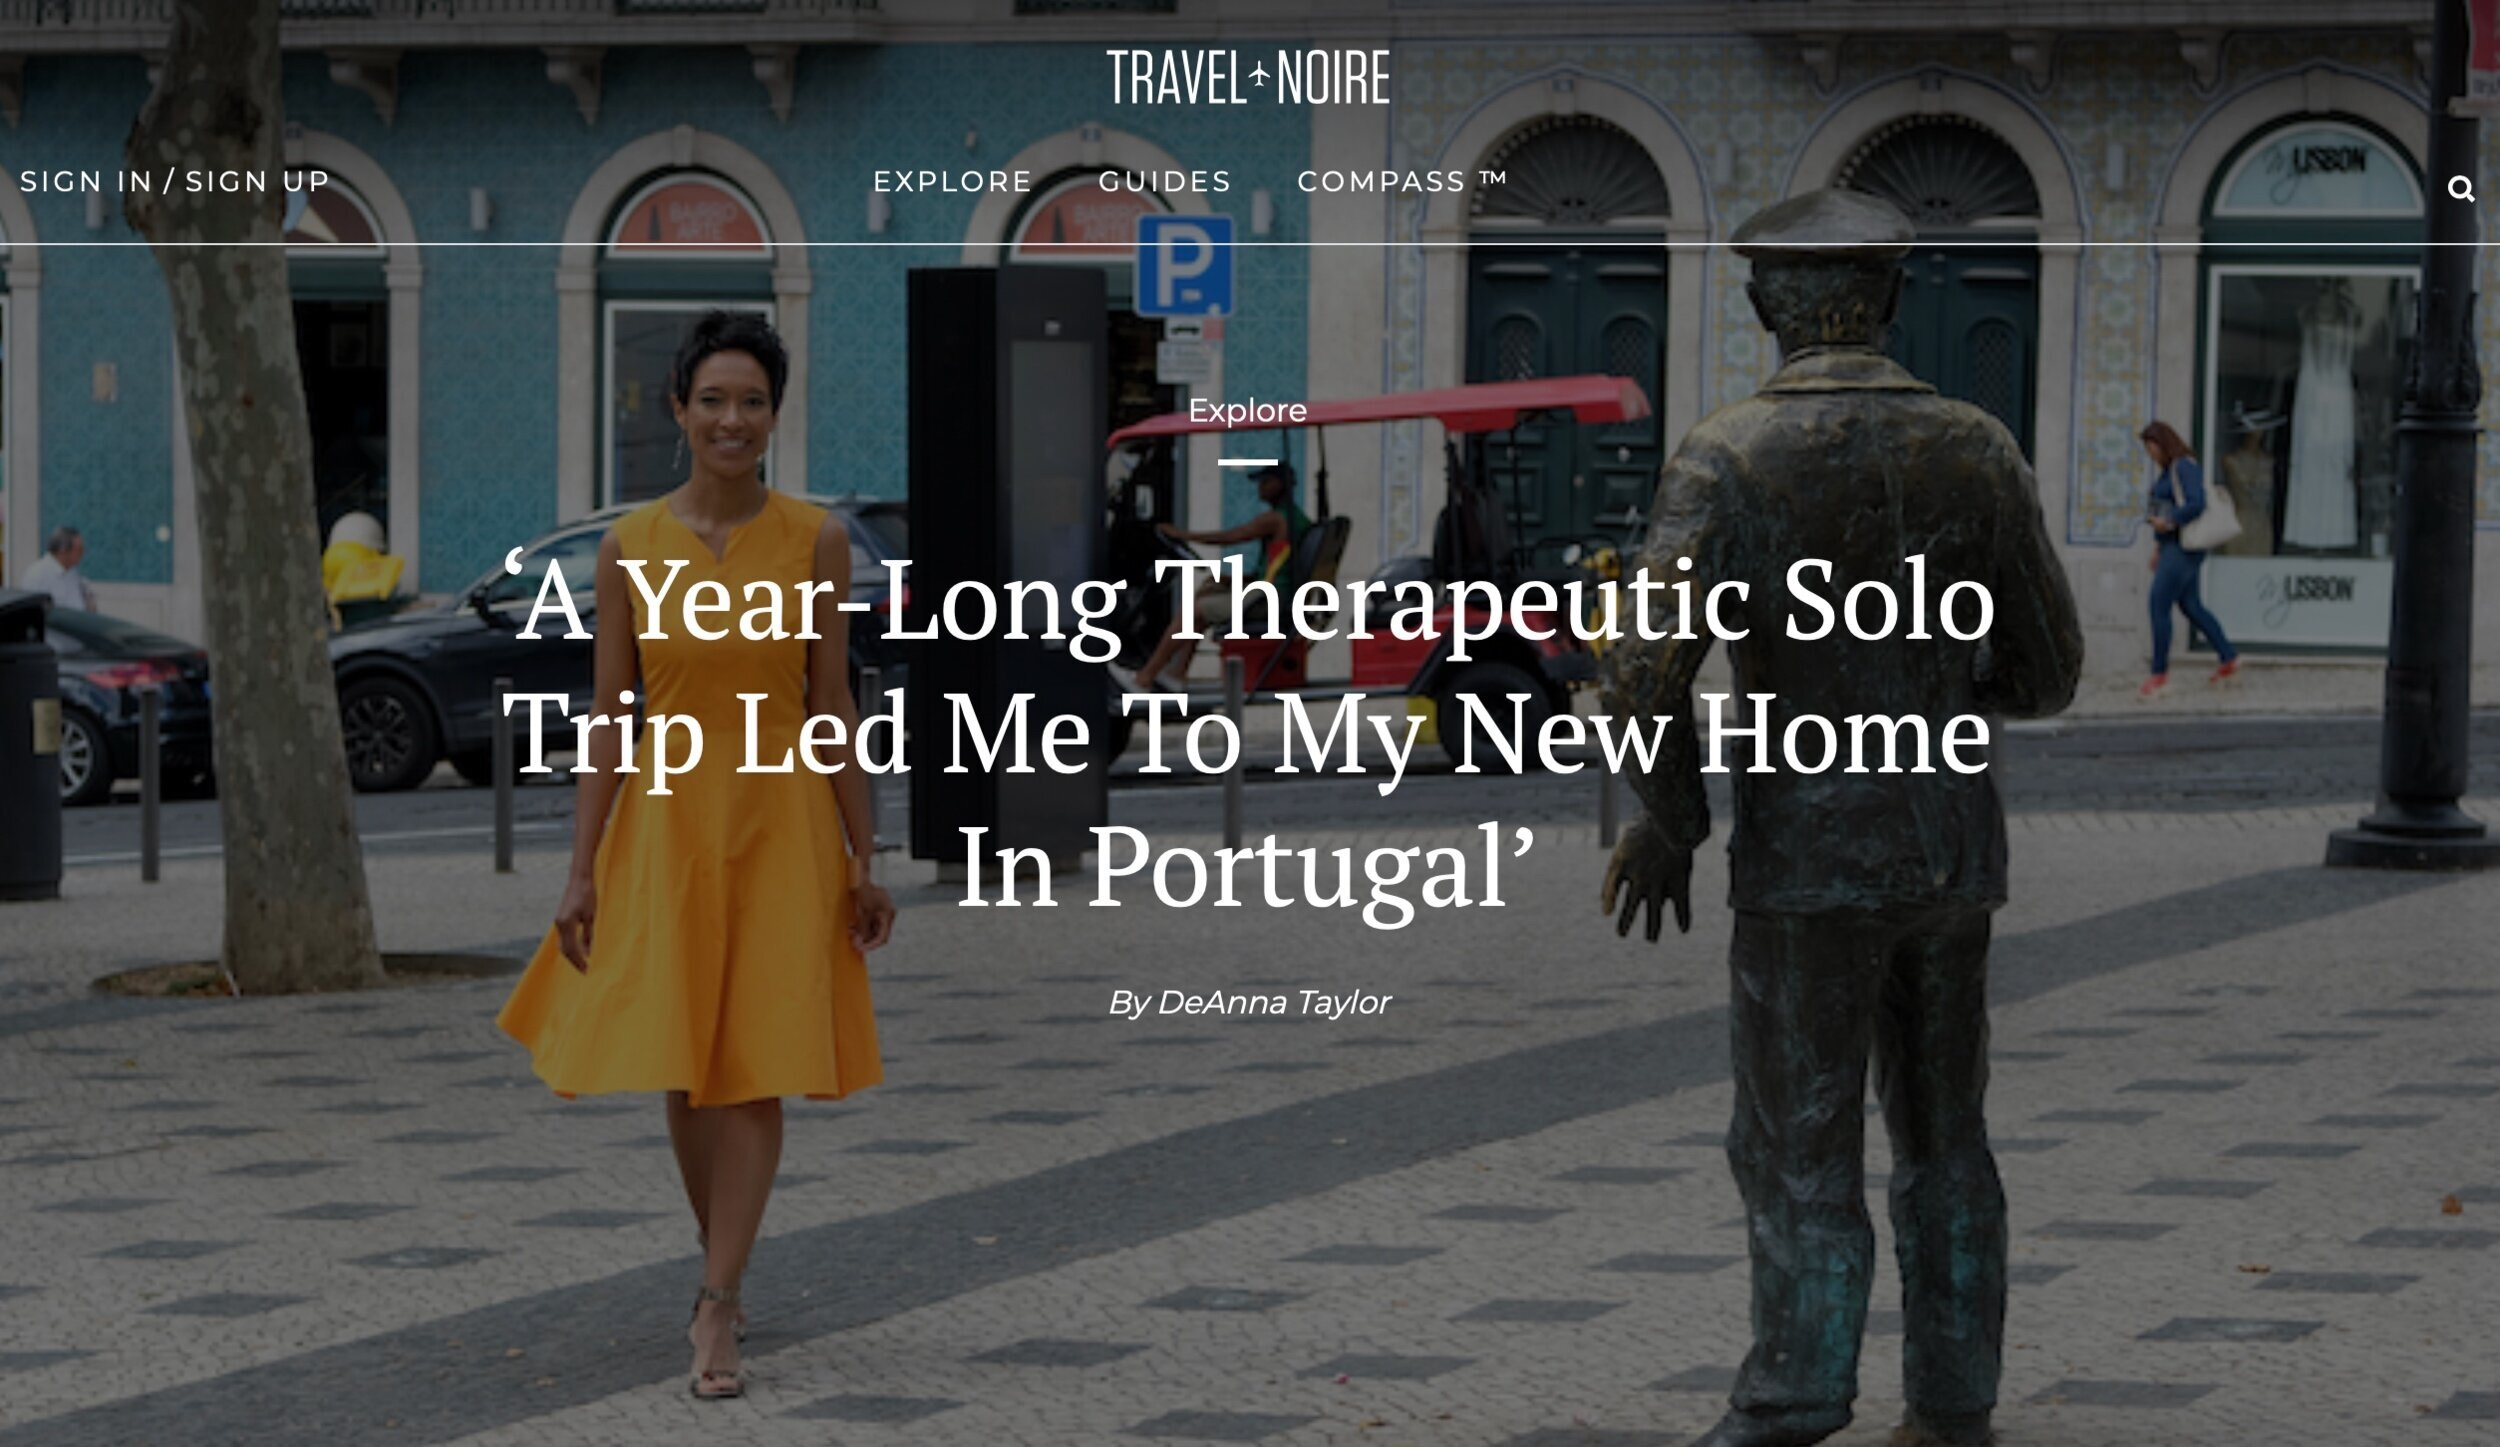 Travel Noire's DeAnne Taylor interviews Sheree M. Mitchell on her boutique travel company and life as a POC expat in Portugal.